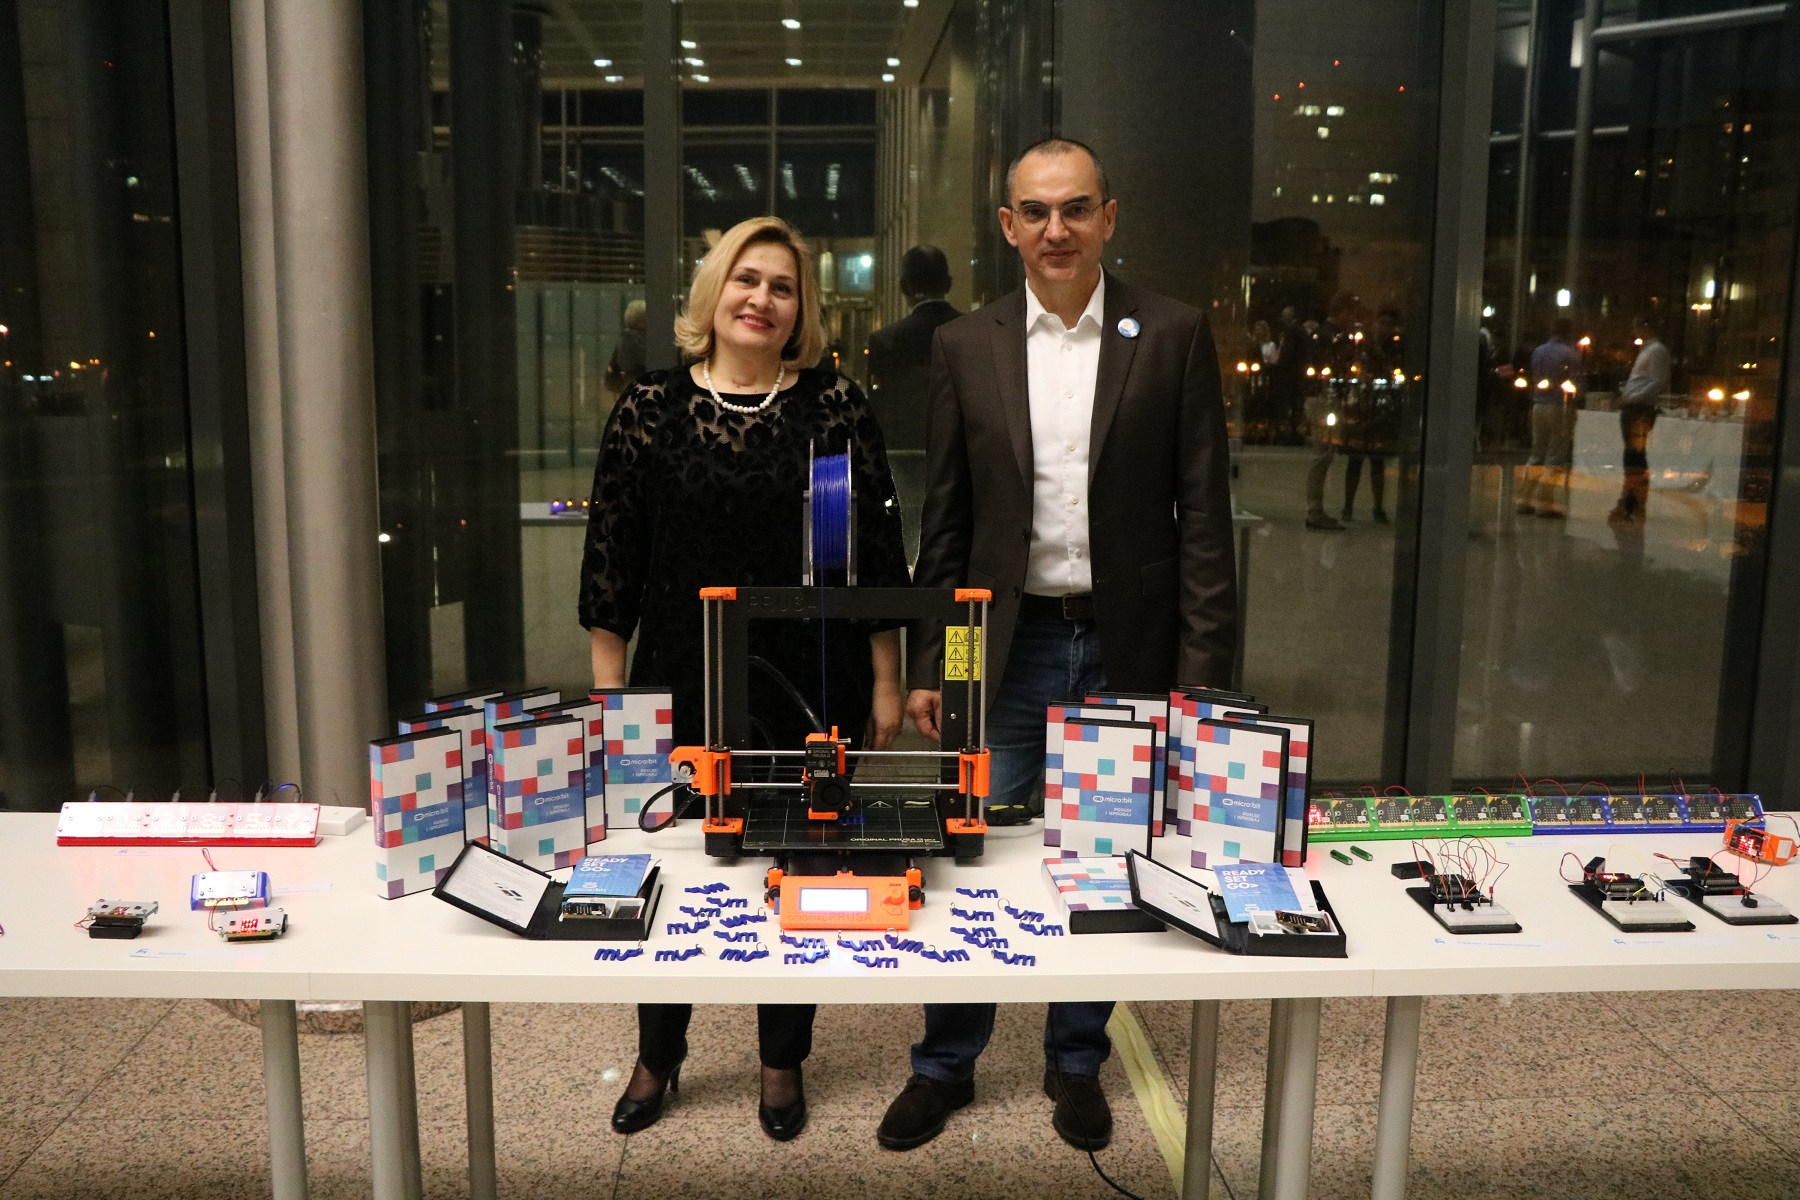 Director General of the National and University Library in Zagreb Tatijana Petrić and Nenad Bakić, the founder of the IRIM Institute, which focuses on the development and growth of innovation among the young population in Croatia.